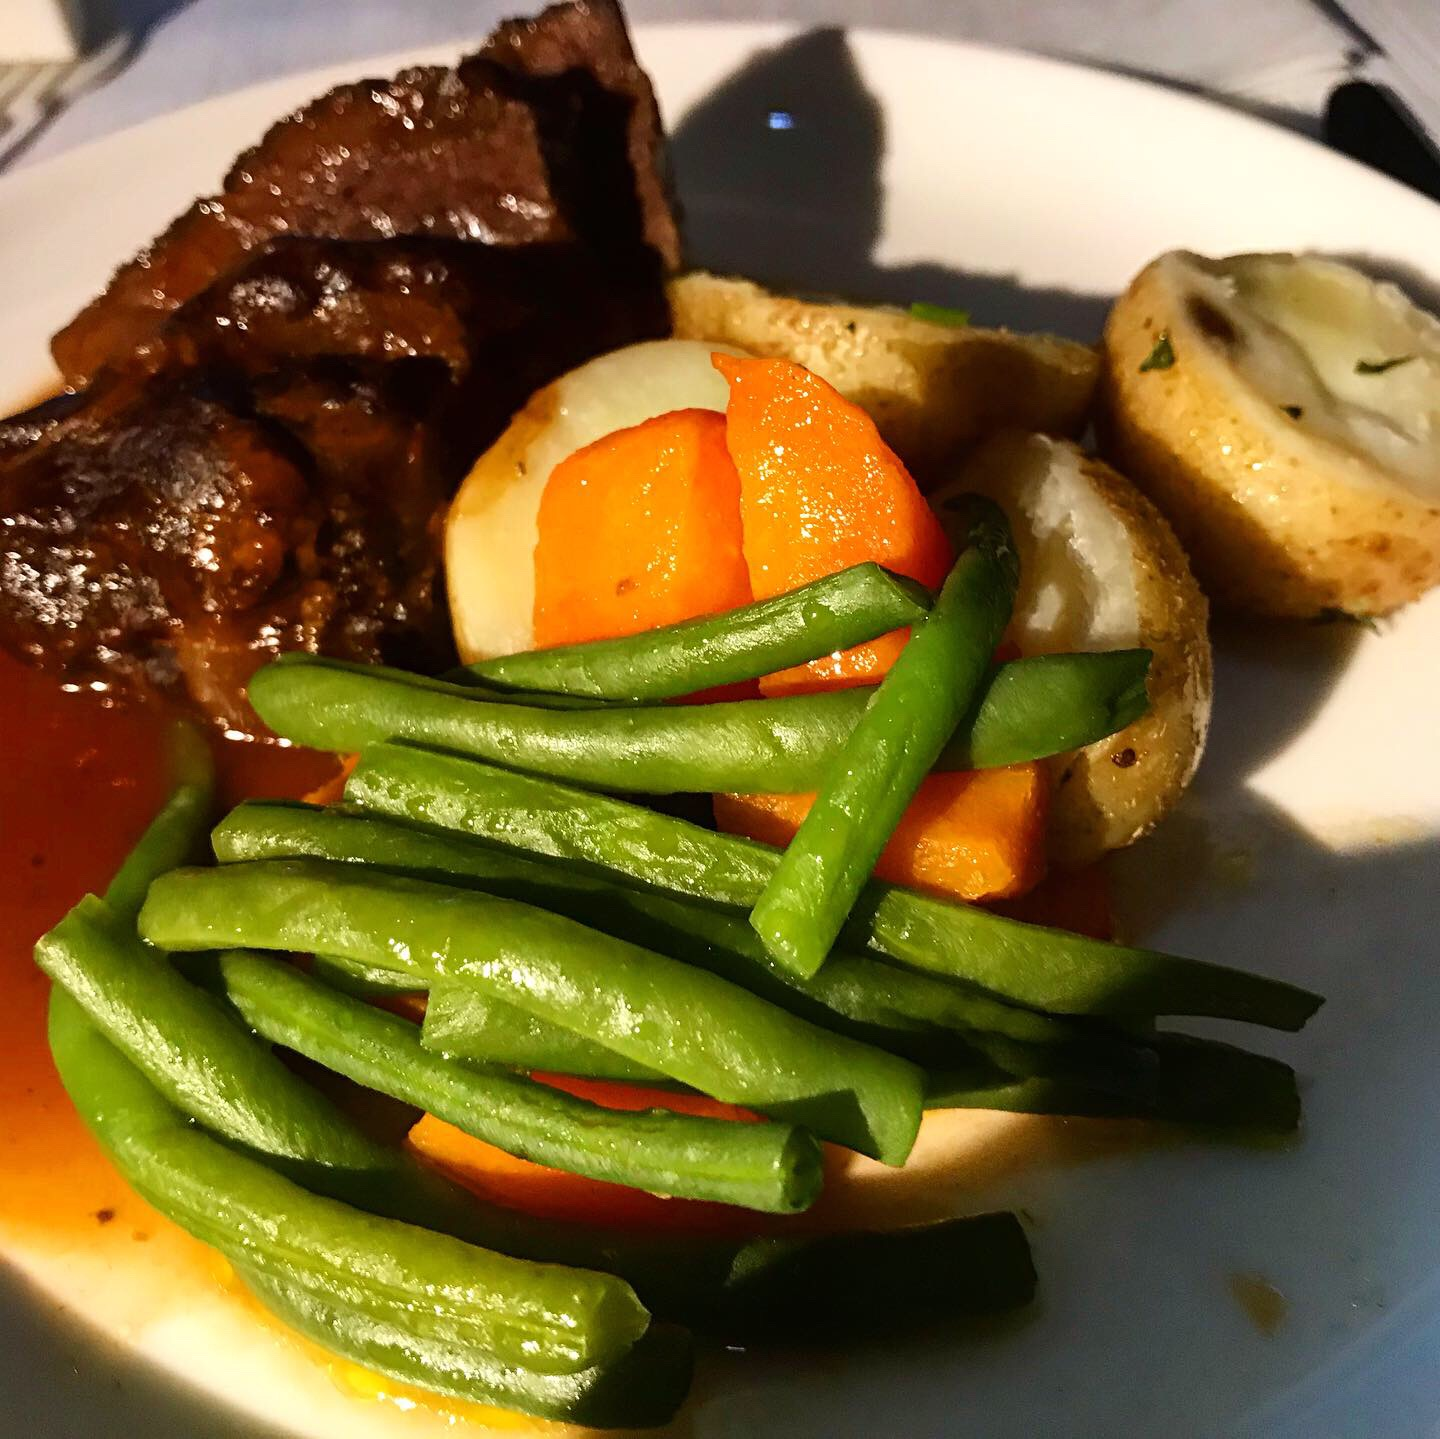 Red Wine Braised Beef-Cheek (with new potatoes, shallots, carrots and green beans)